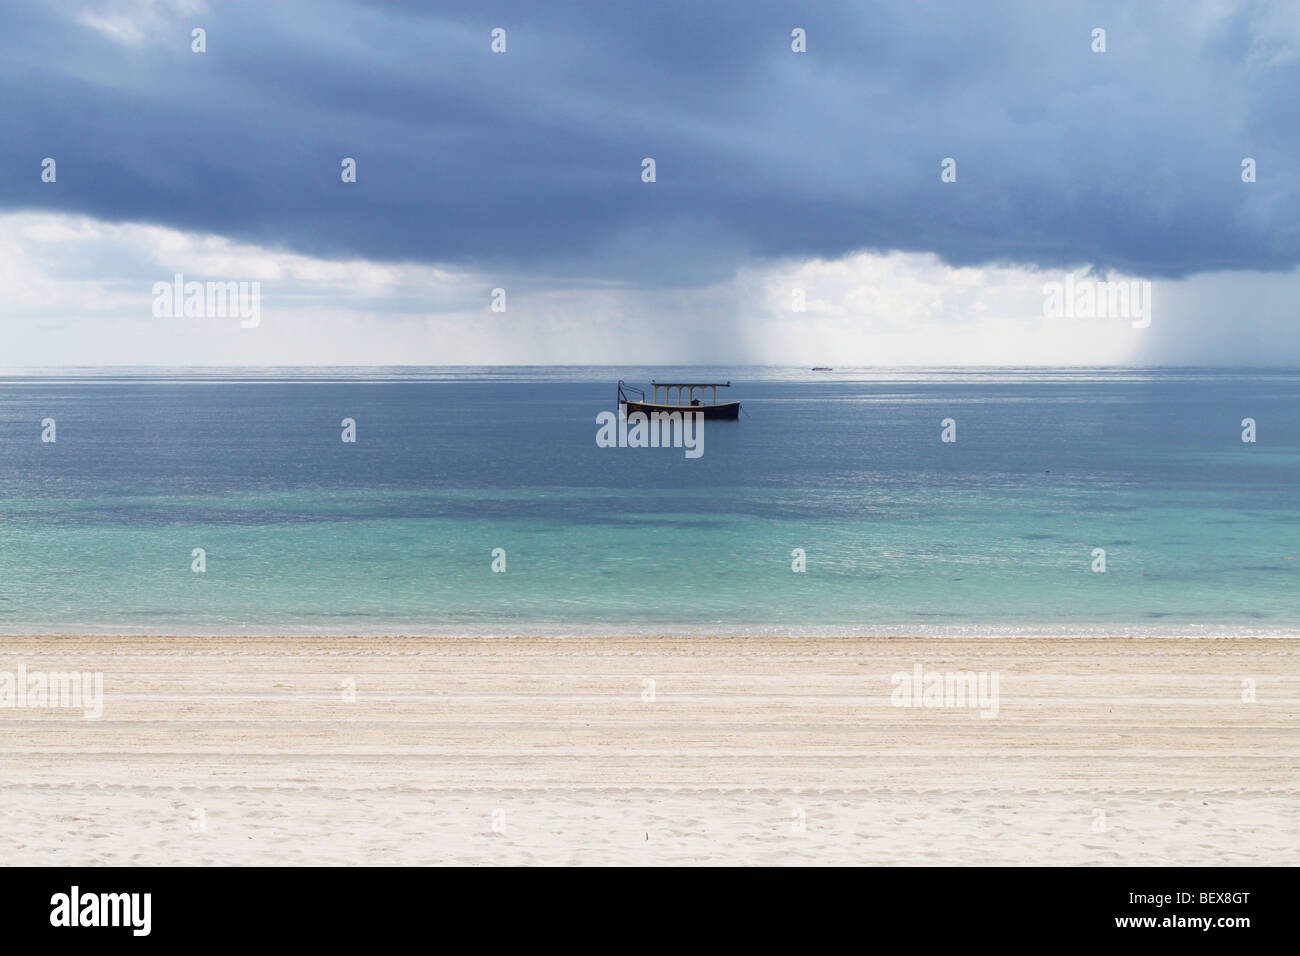 A tropical sandy beach with storm approaching, Riviera Maya, Cancun, Mexico - Stock Image